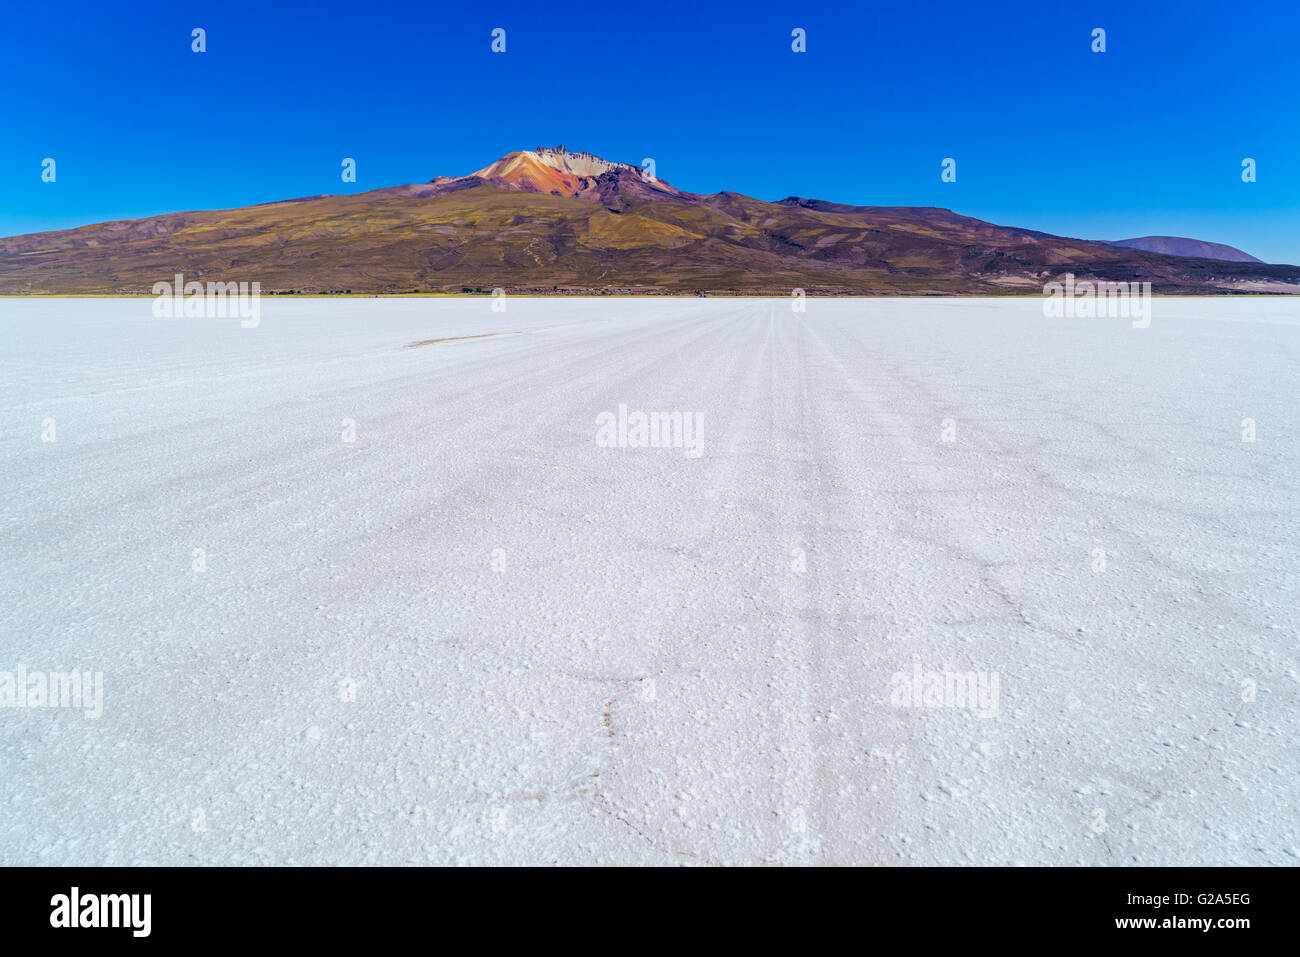 View of Salar de Uyuni the world largest salt flat in Bolivia - Stock Image